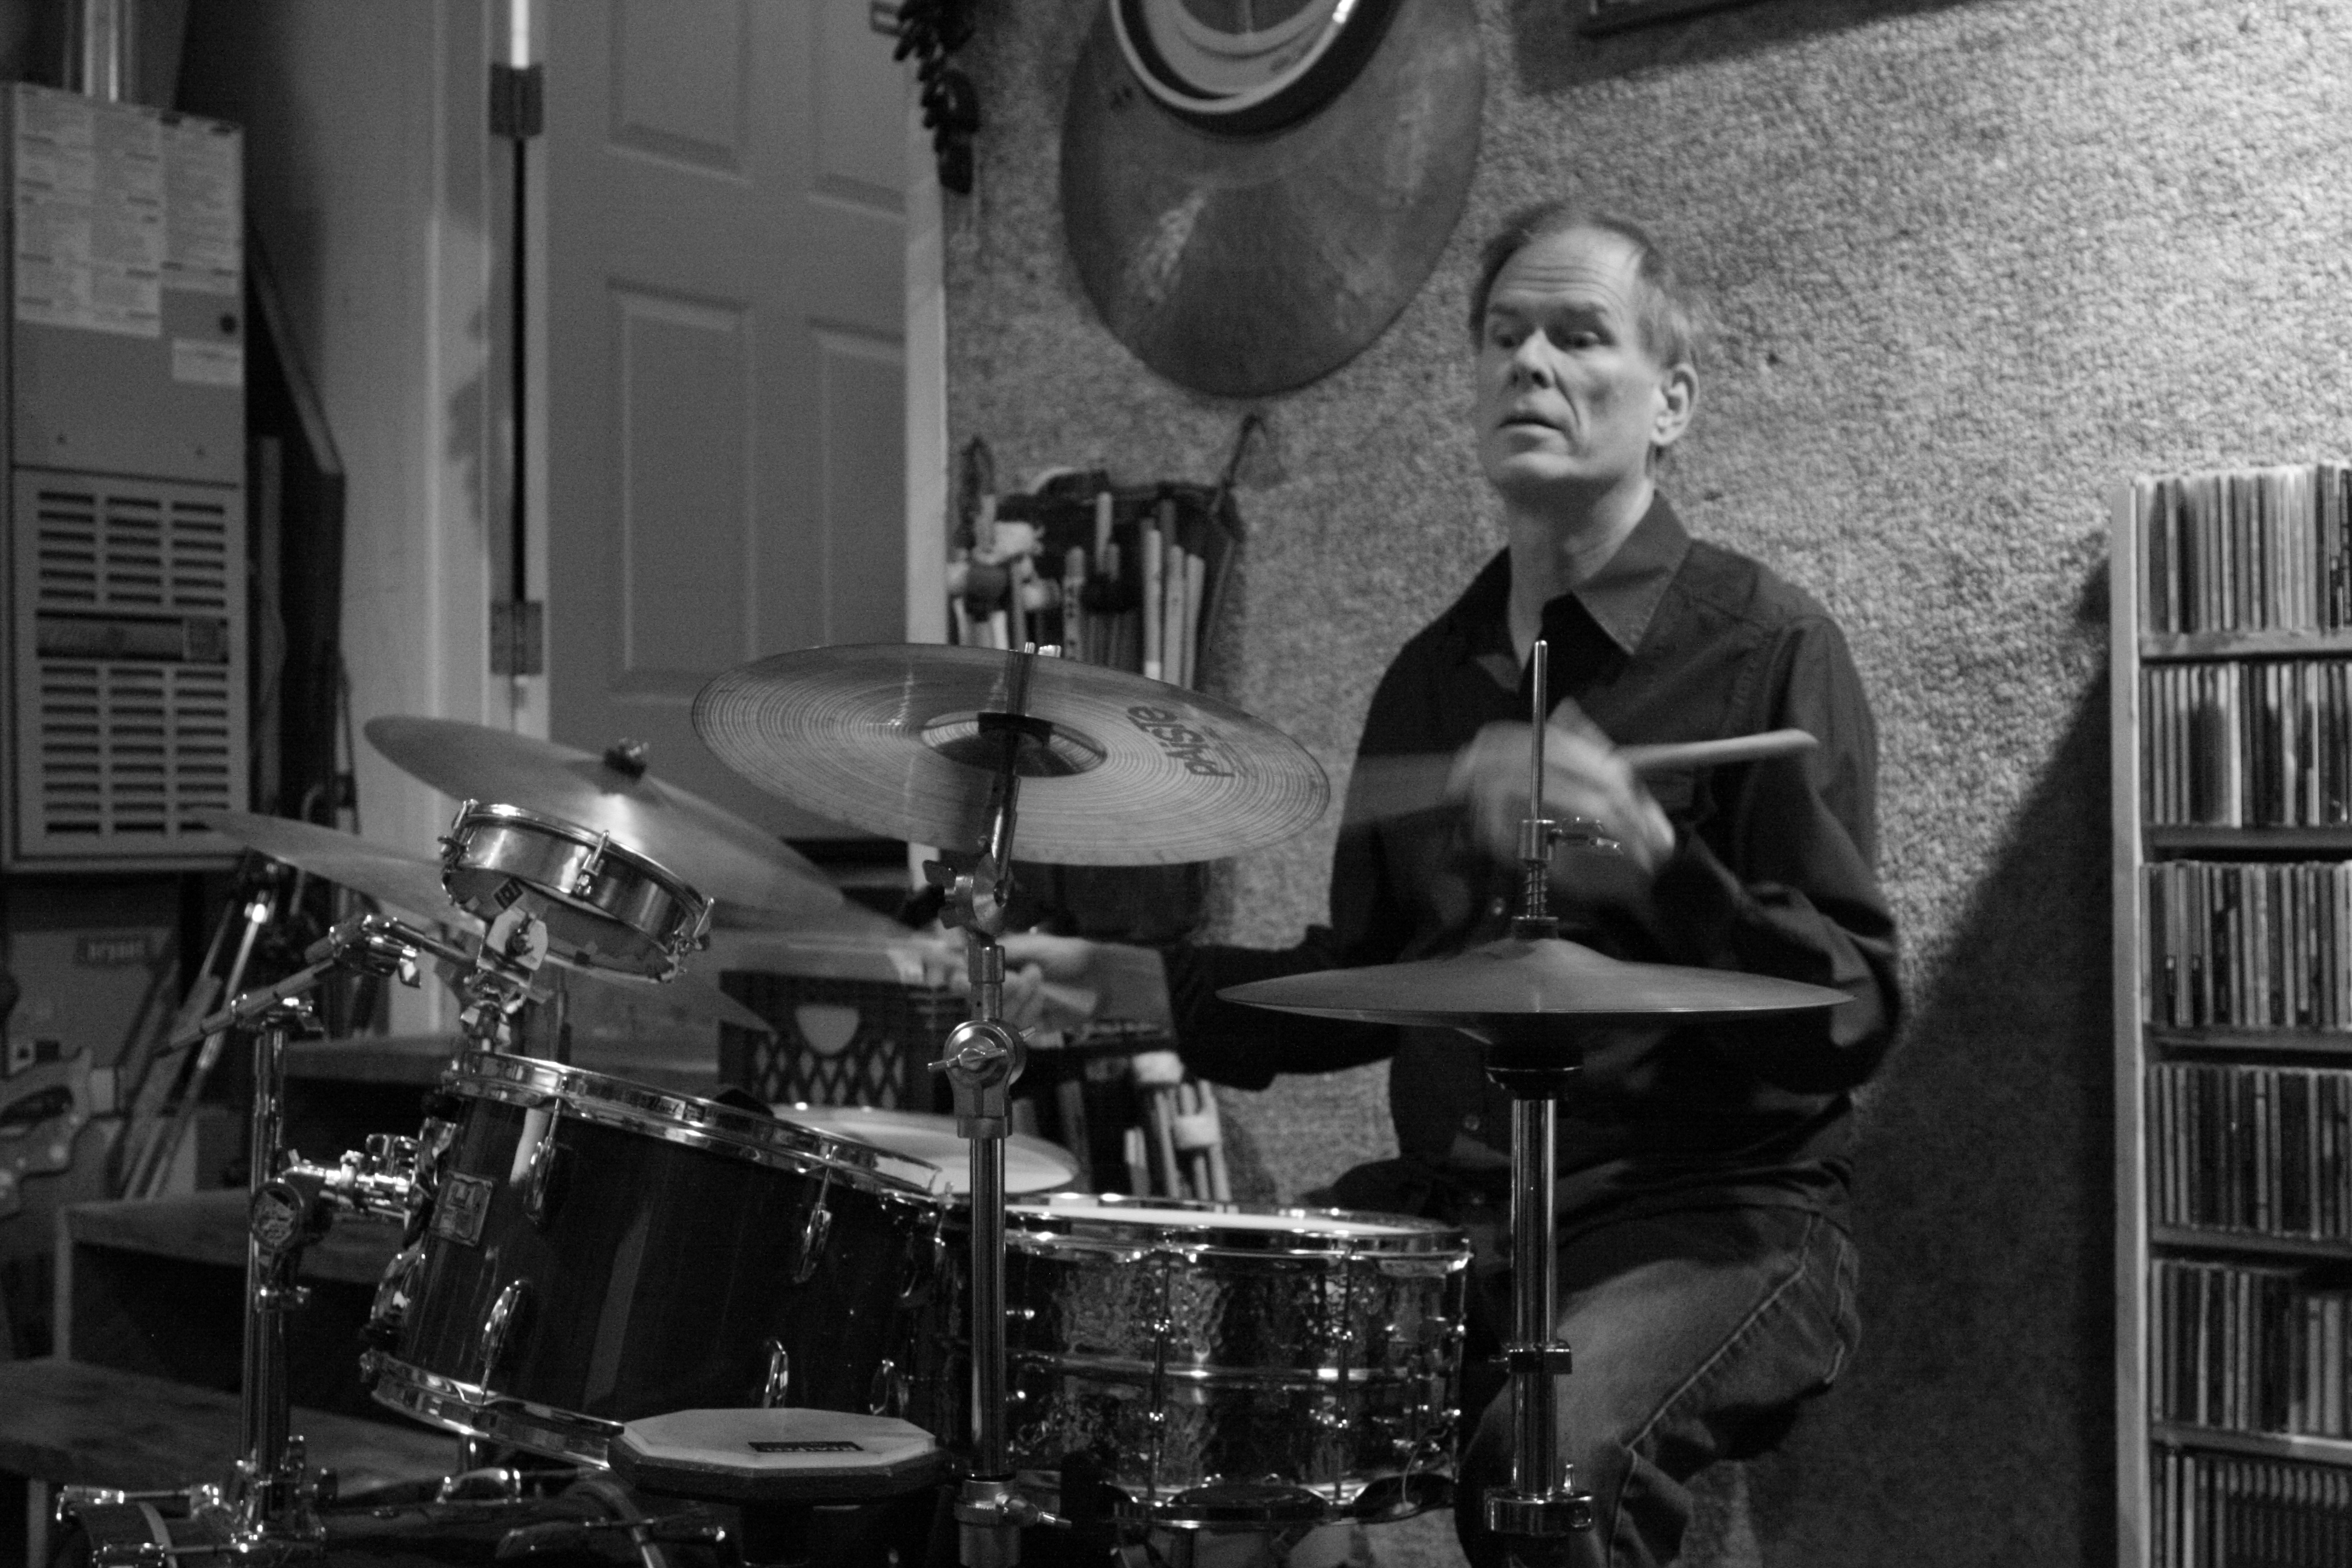 Kendrick Freeman playing drums in black and white